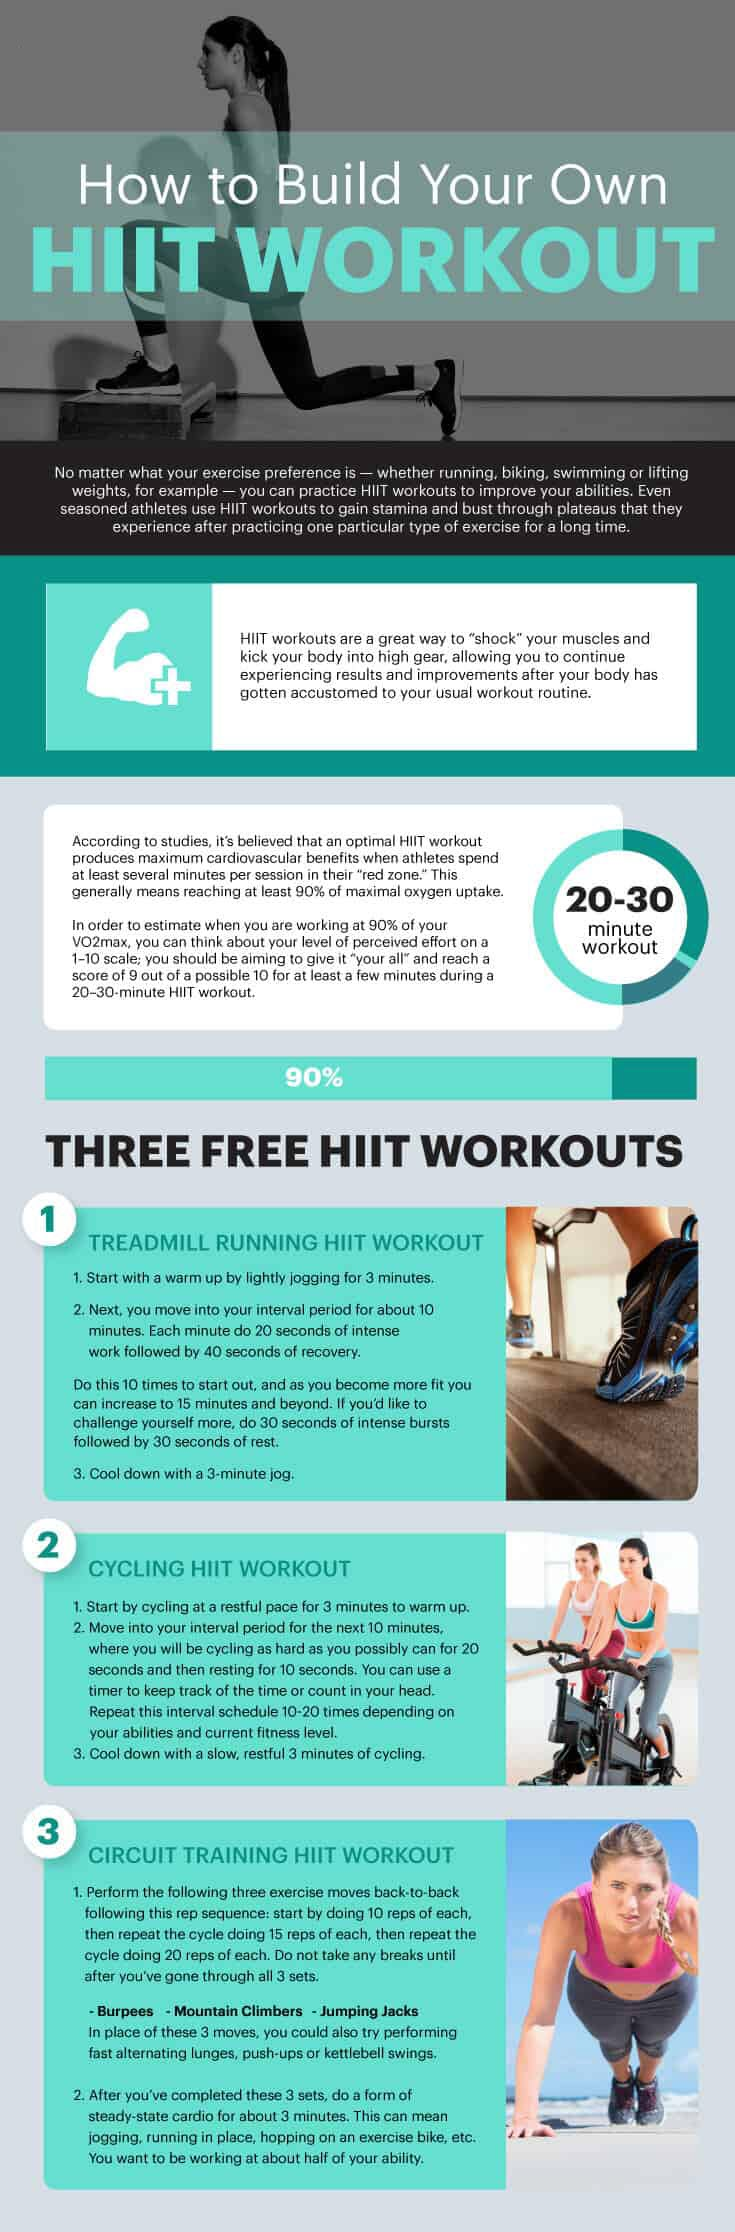 How to do a HIIT workout - MKexpress.net